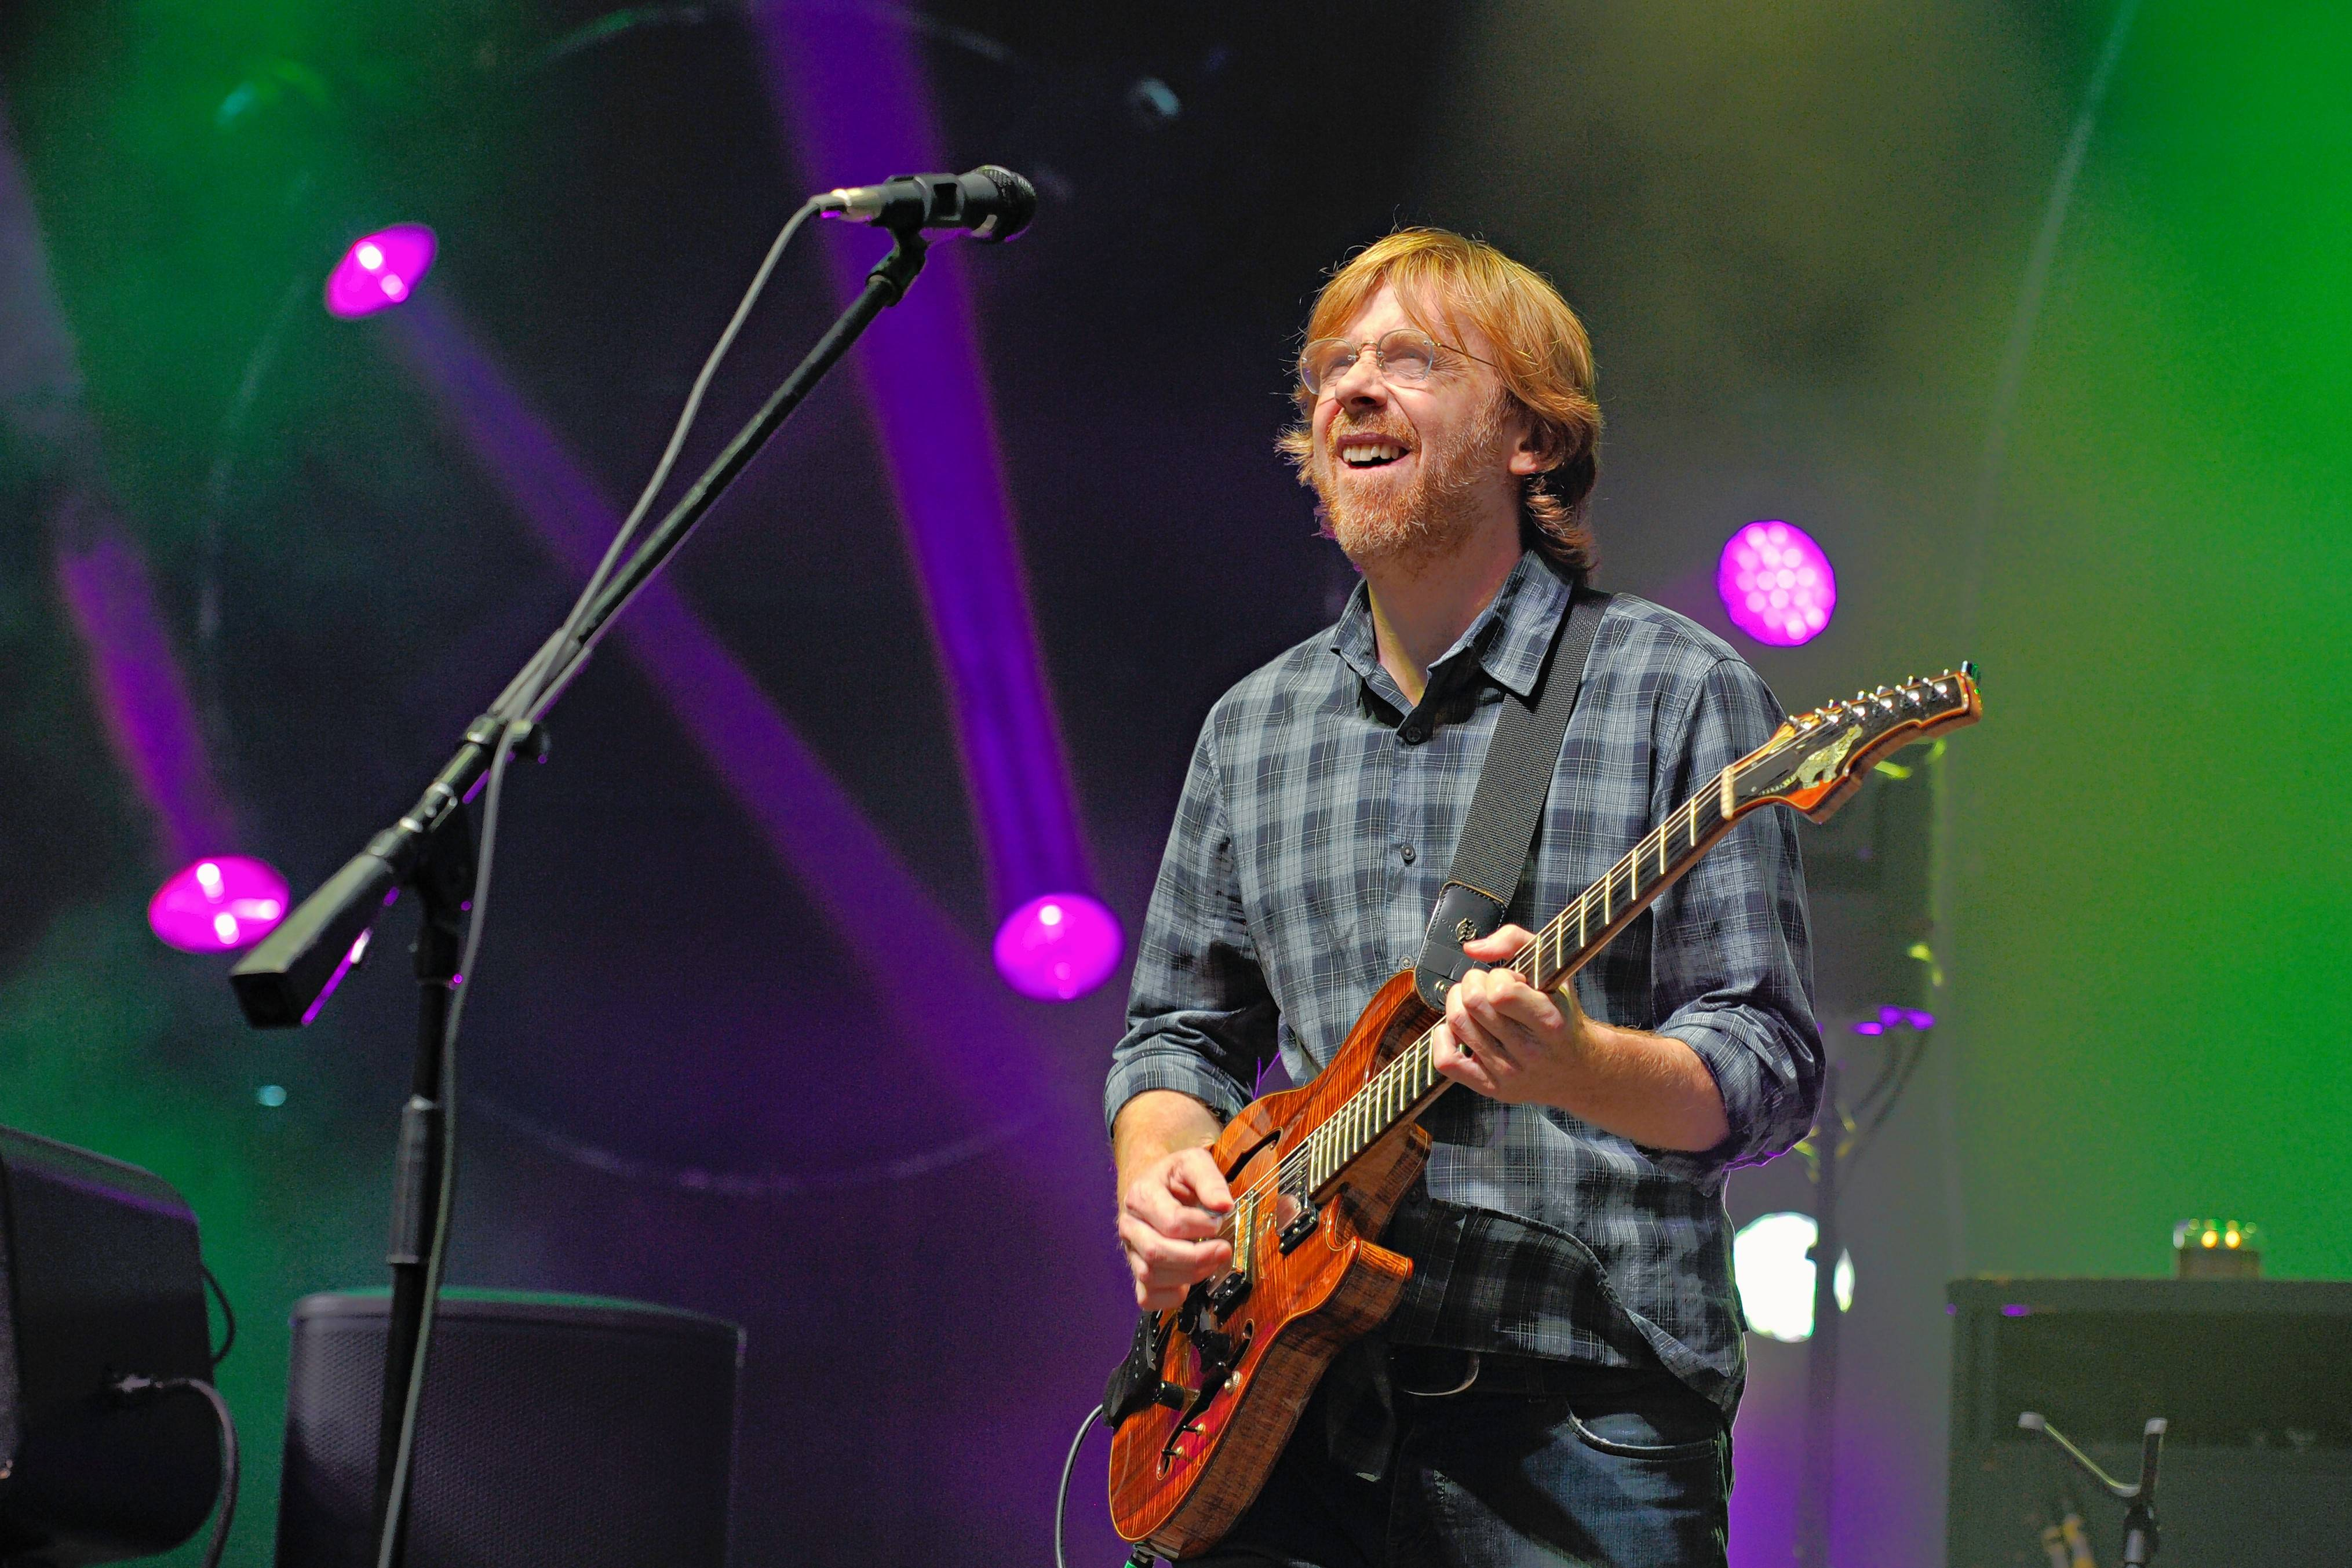 Trey Anastasio and Phish jam for three nights Friday through Sunday, July 14-16, at the Huntington Bank Pavilion on Northerly Island.